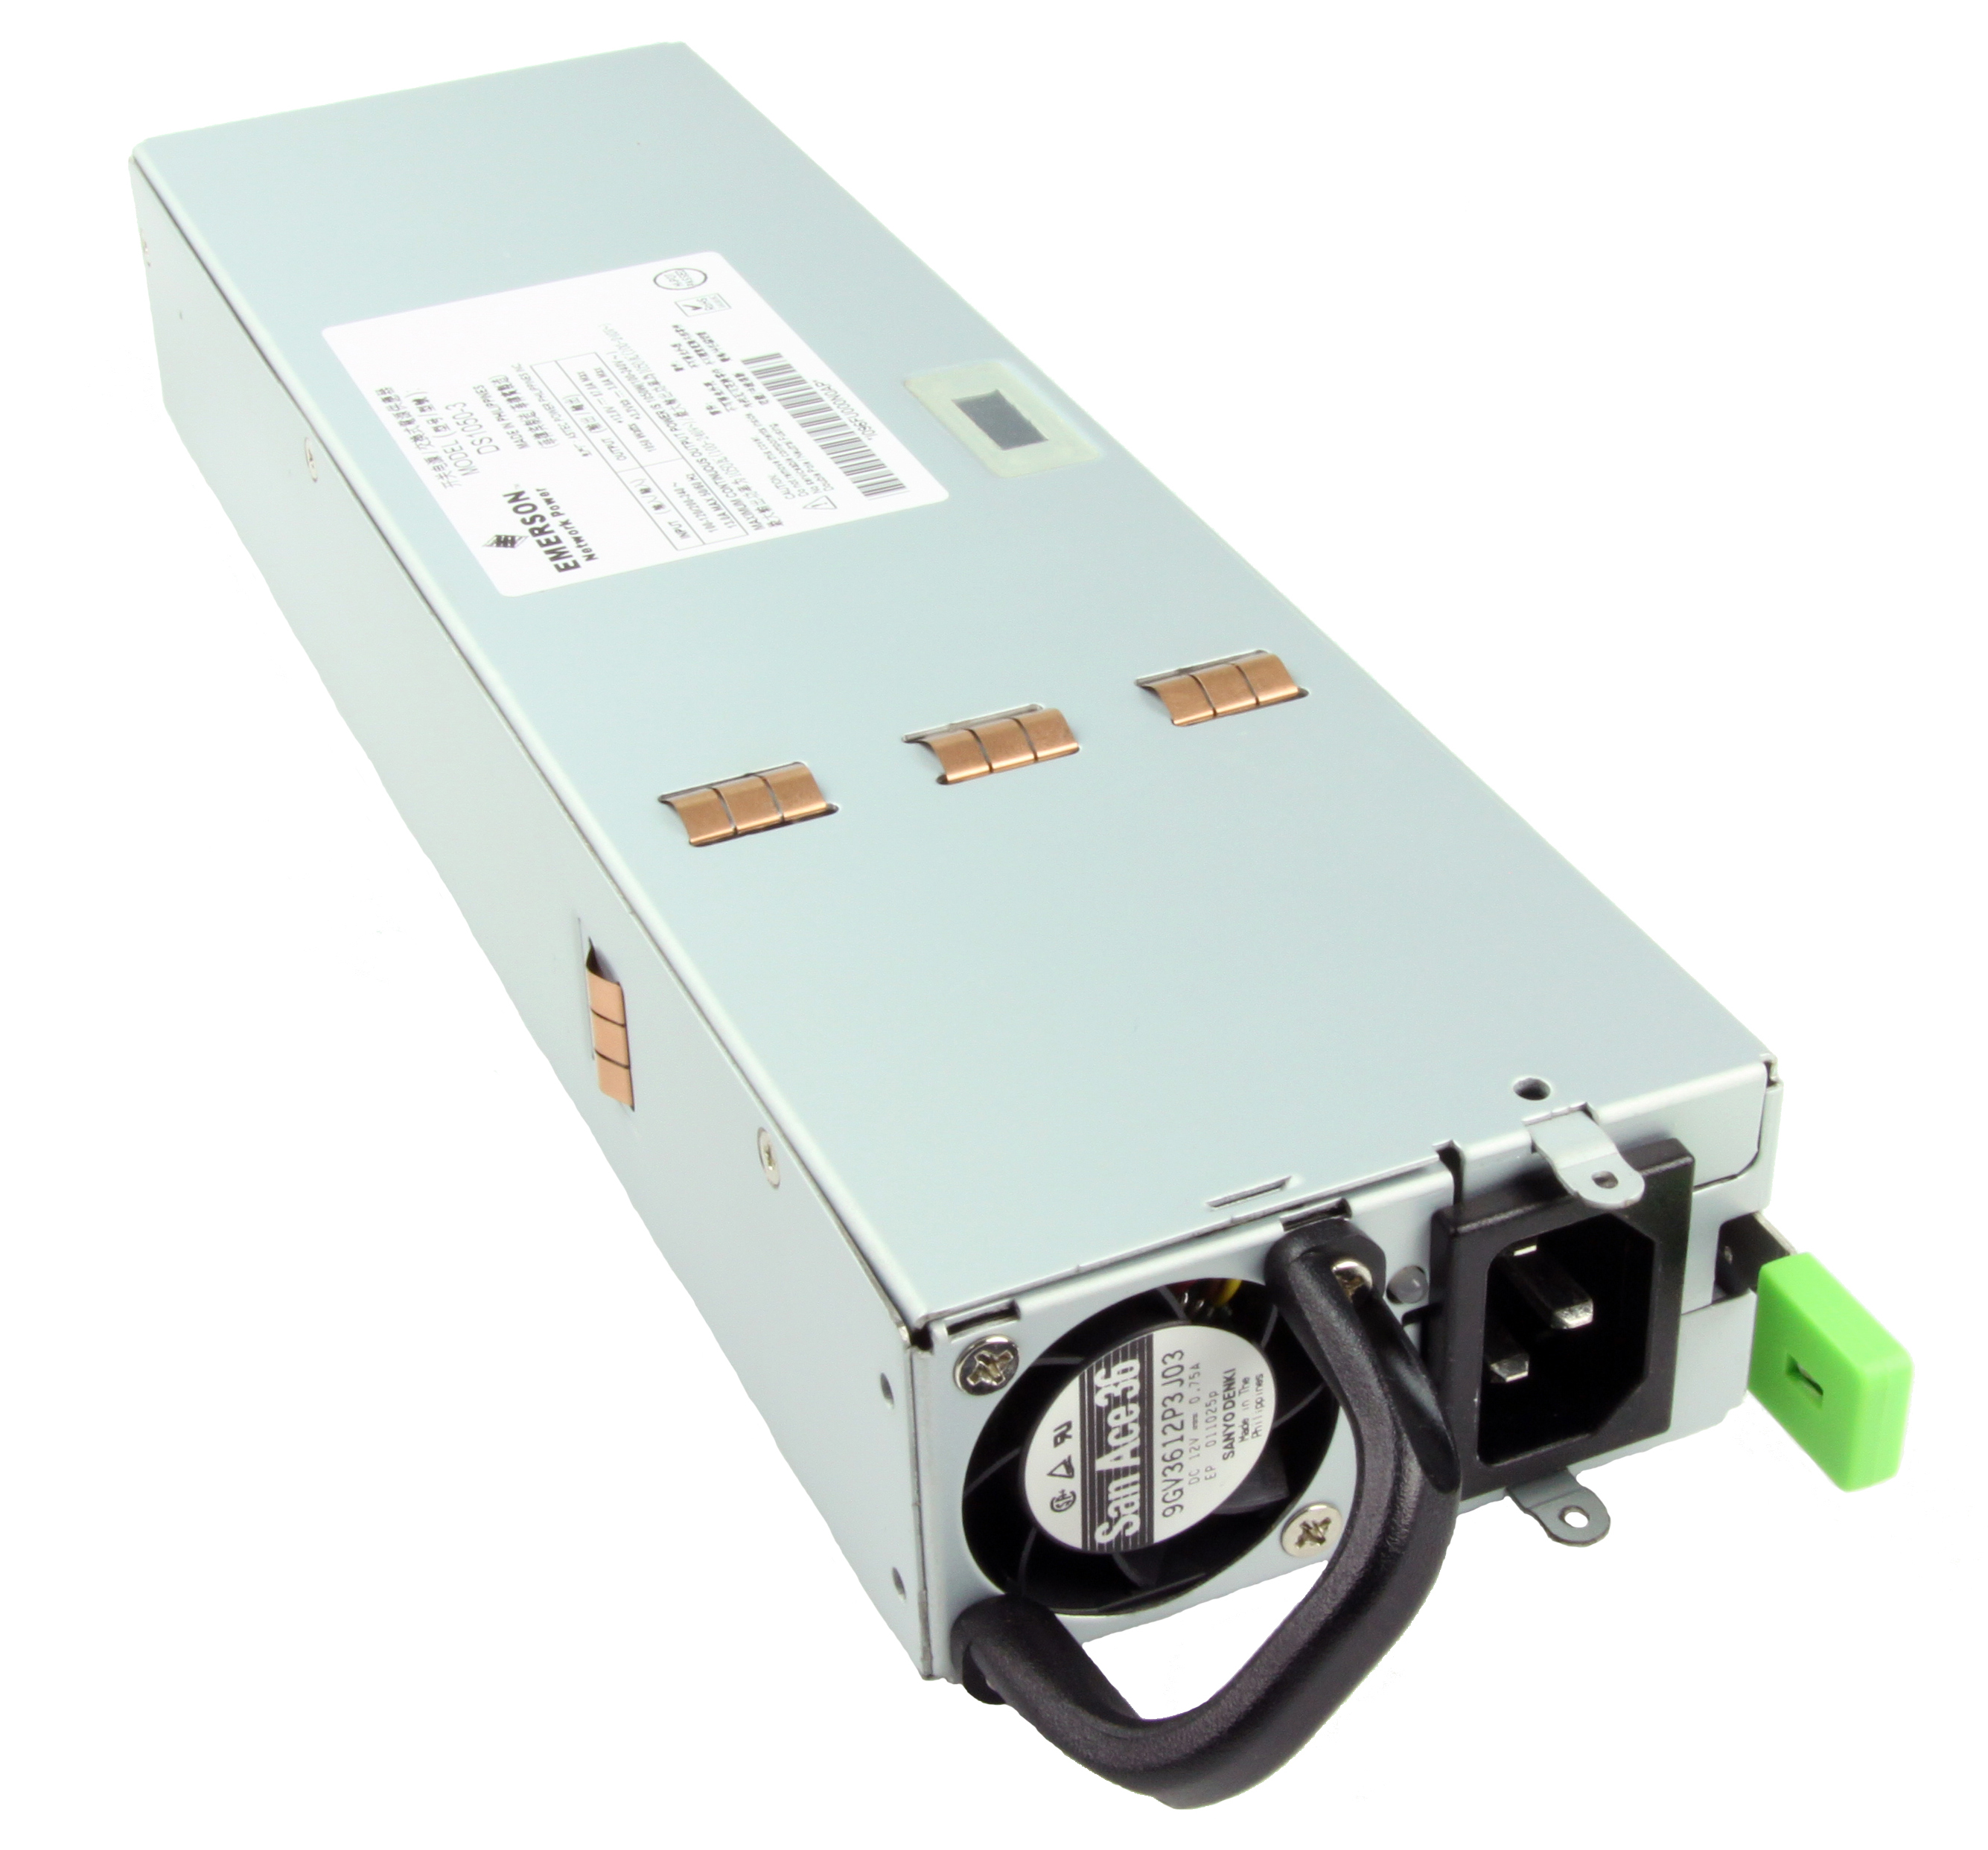 Emerson Network Power Adds DS1050-3 1050 Watt Model to Line of Gold Standard Efficiency Bulk Front End AC-DC Power Supplies